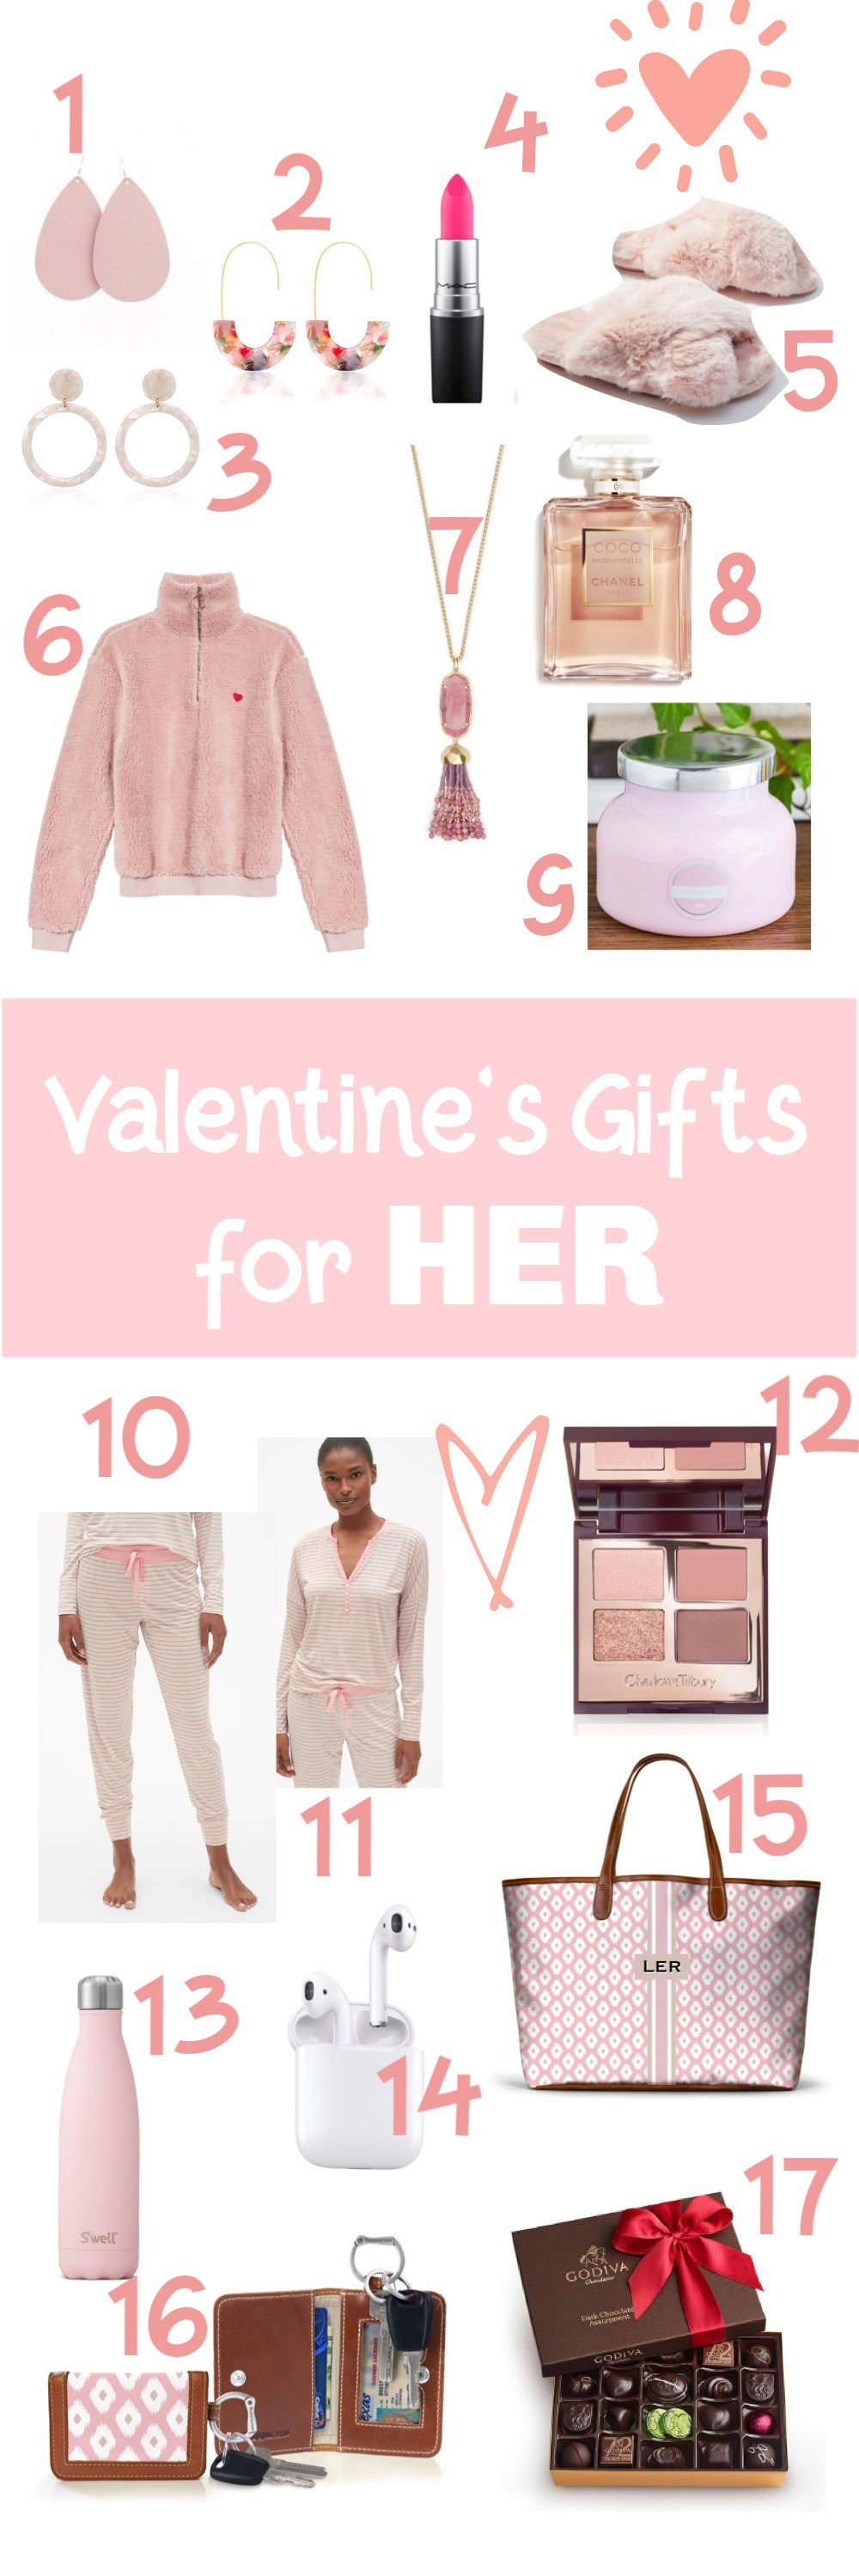 3 Things and Valentine's Gift Ideas for Her